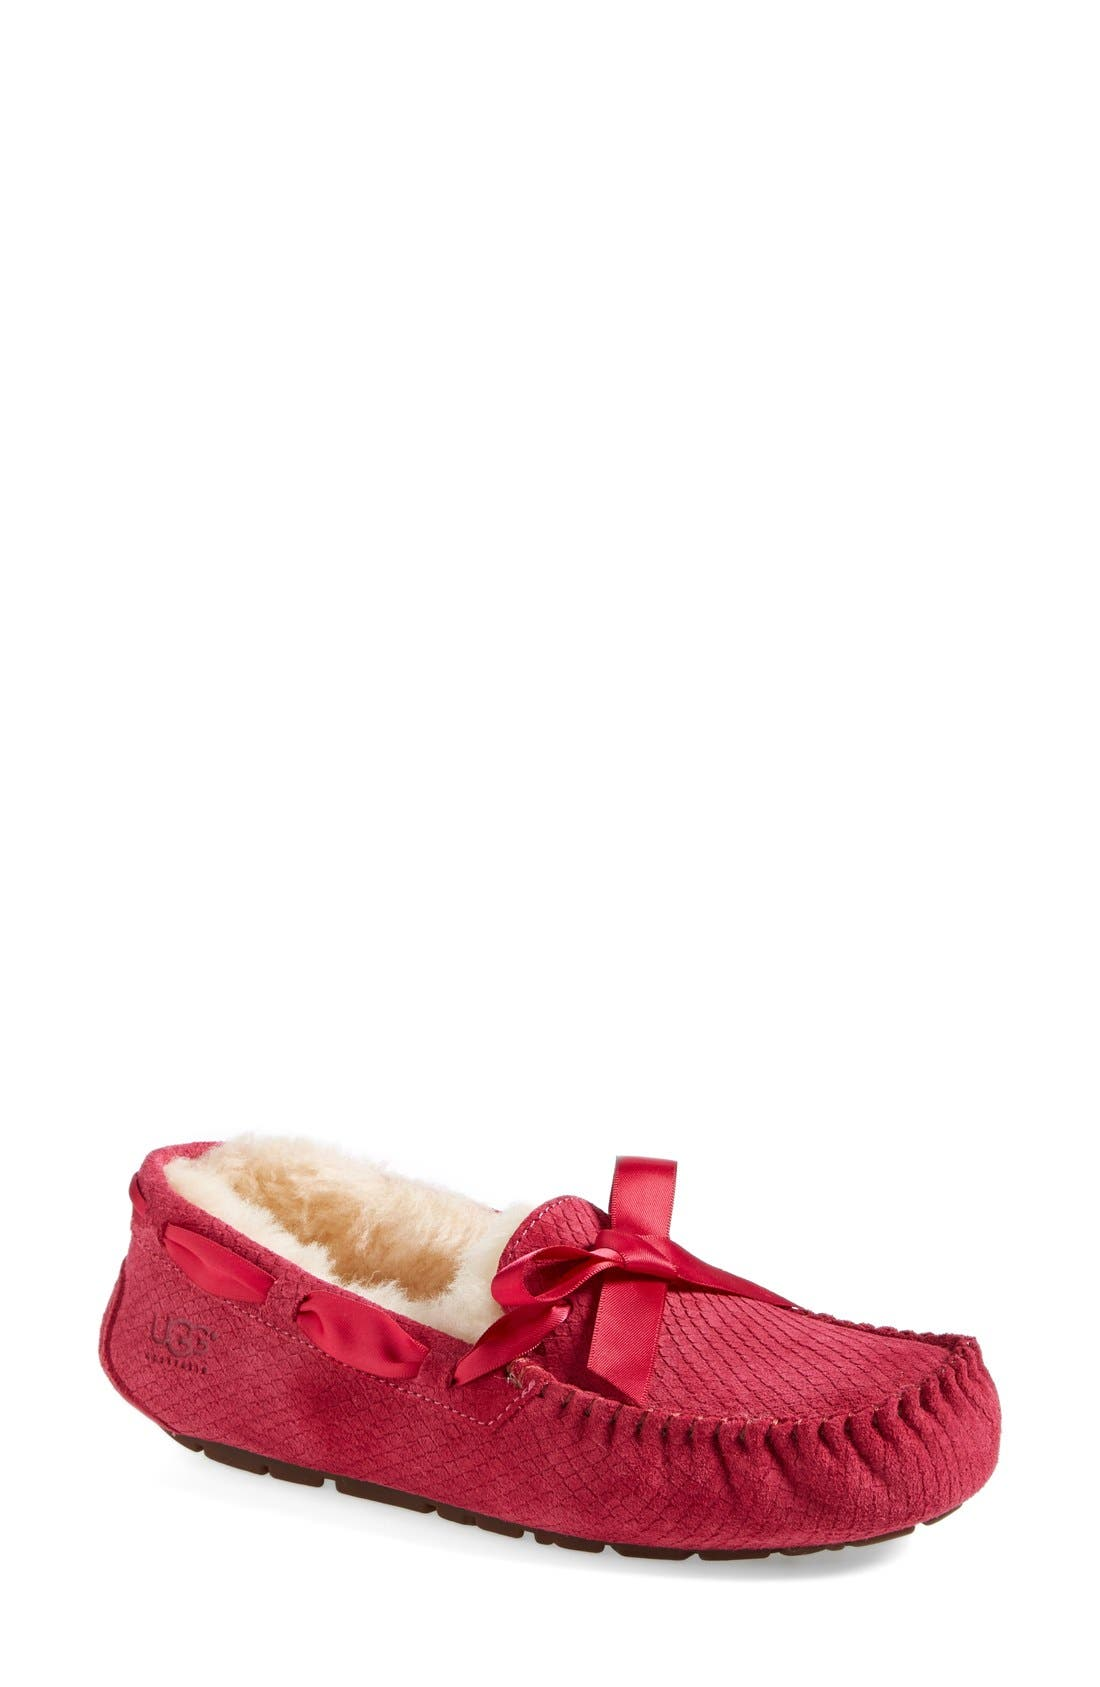 Main Image - UGG® Australia 'Dakota - Exotic Scales' Suede Slipper (Women)